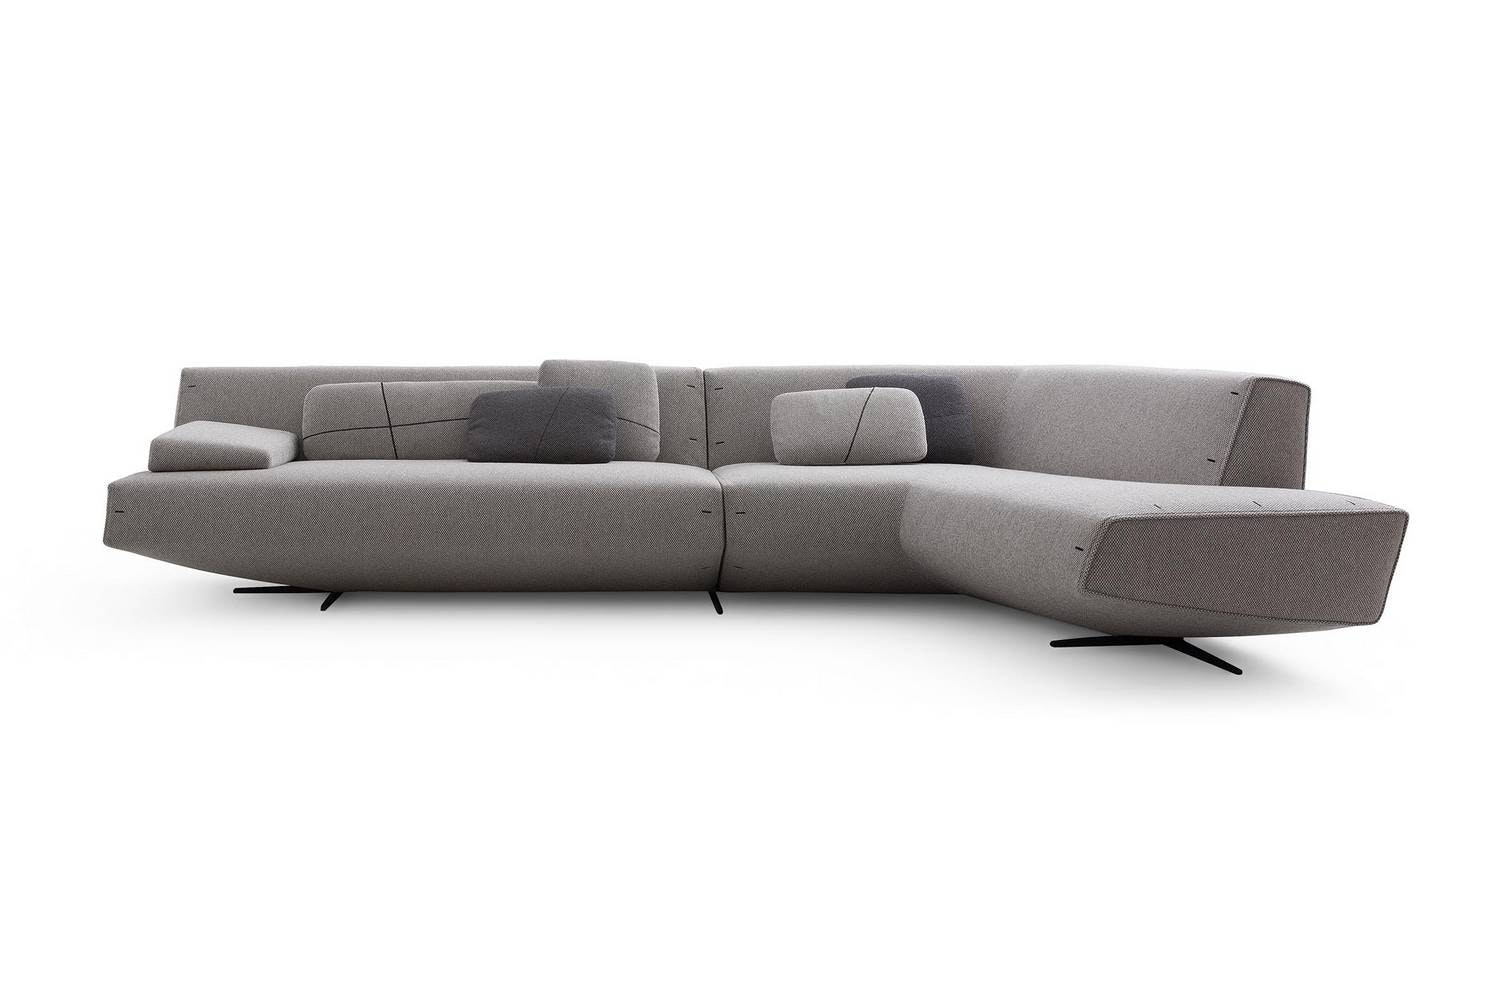 Sydney Sofa by J. M. Massaud for Poliform